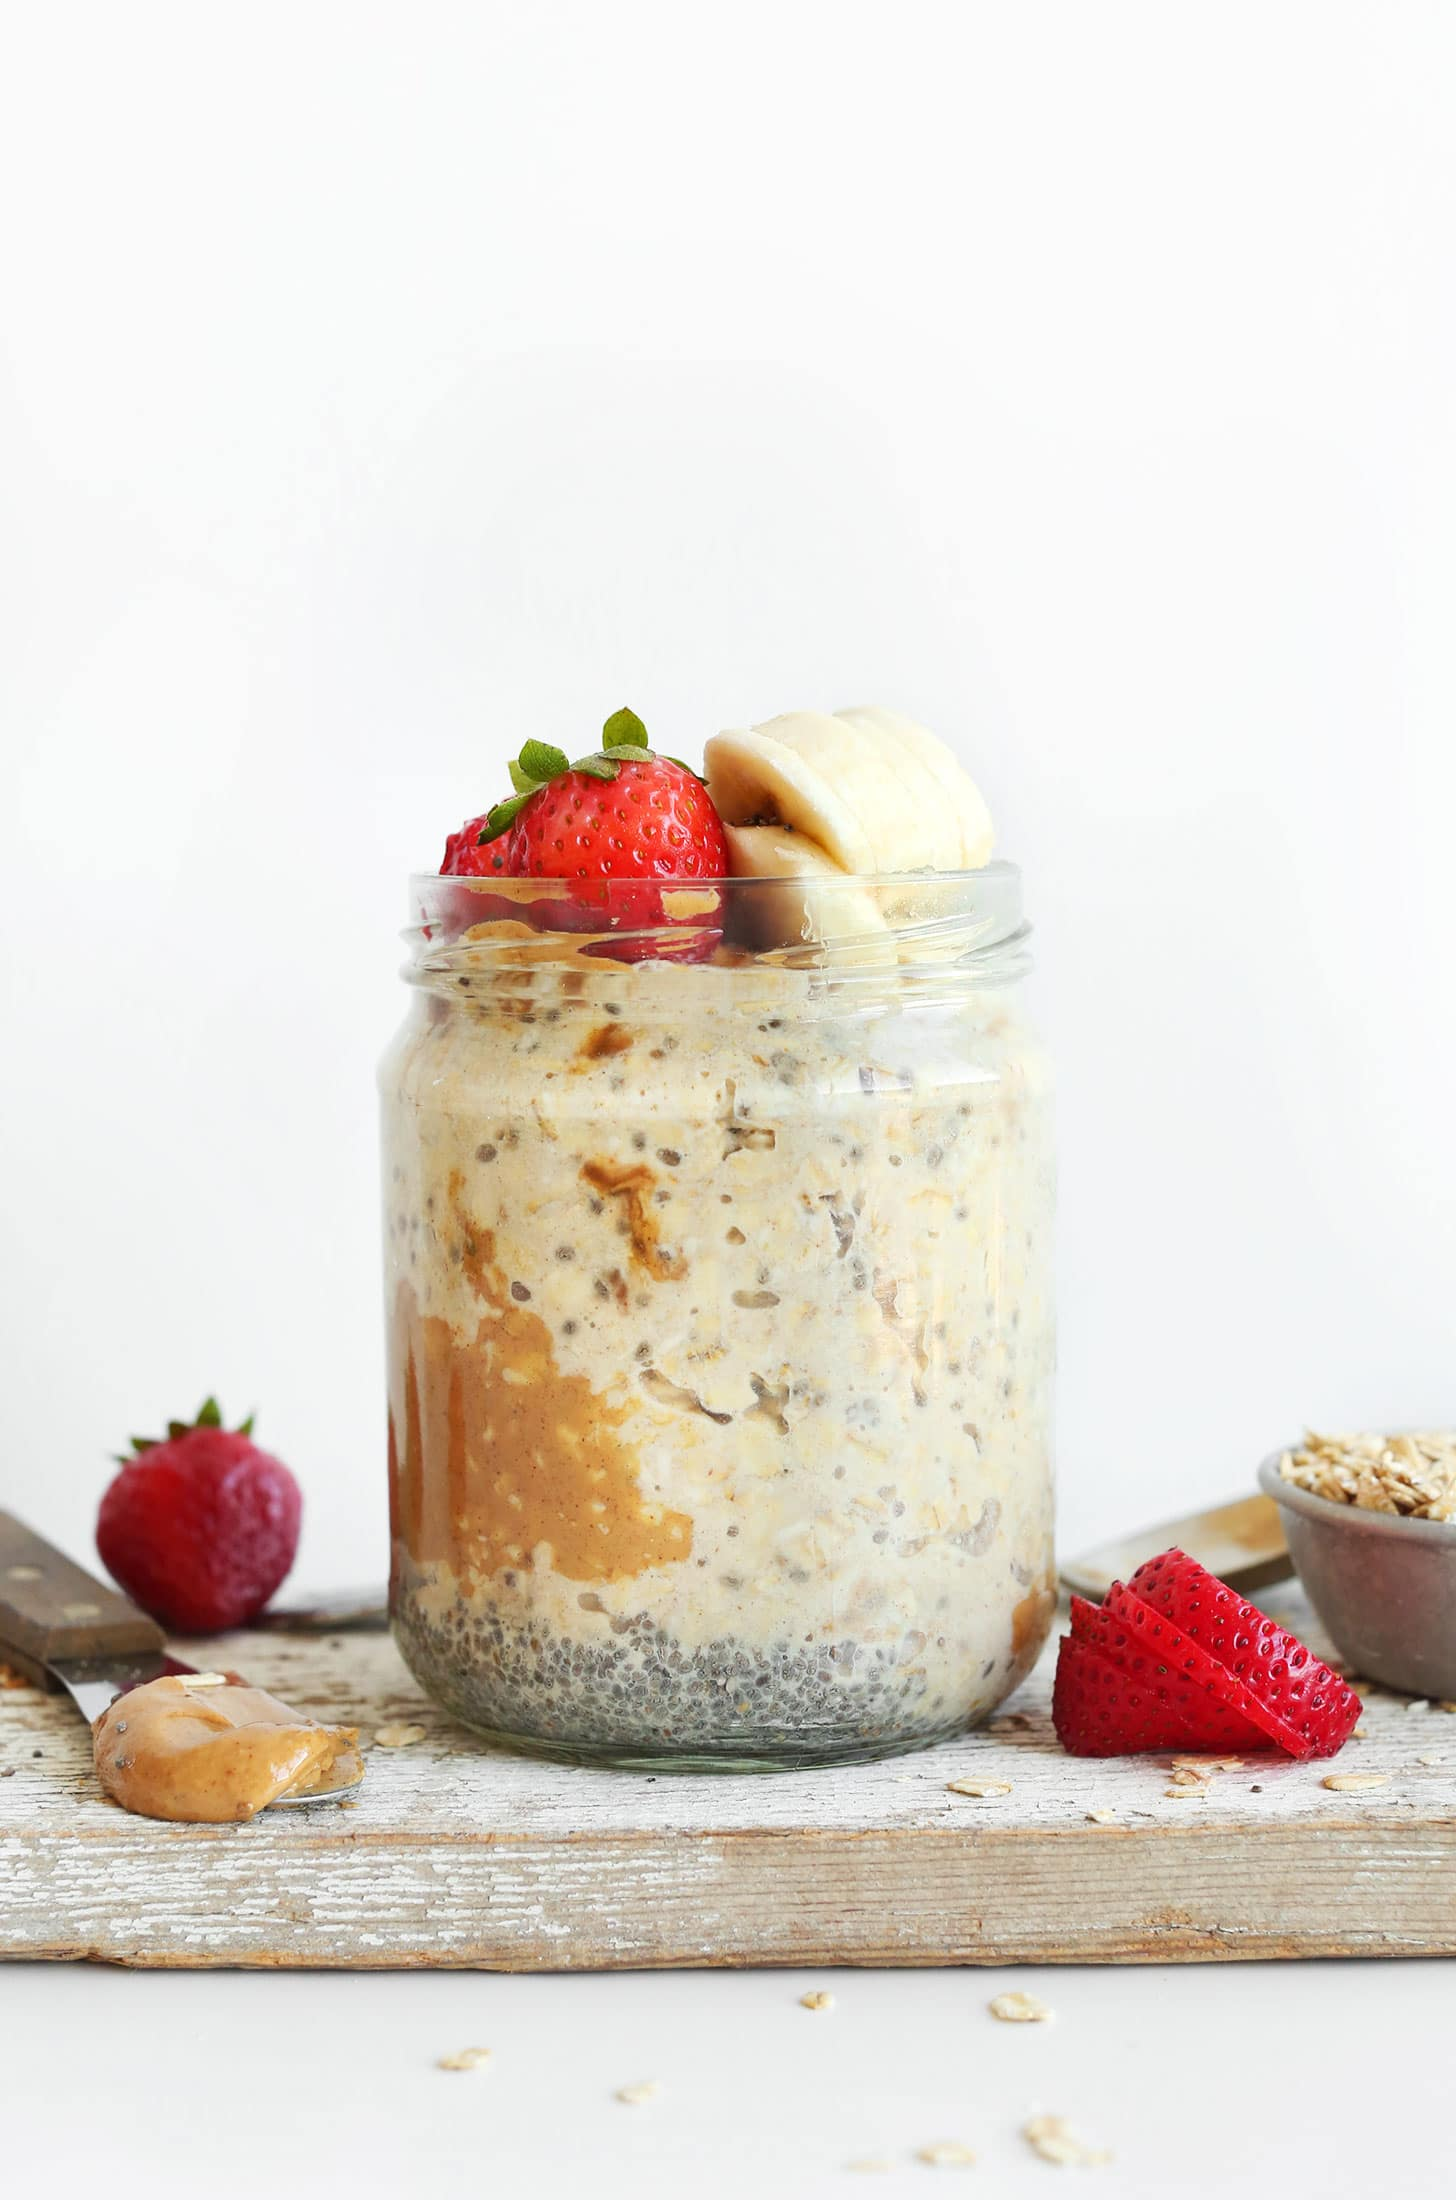 Peanut Butter Overnight Oats from minimalistbaker.com on foodiecrush.com